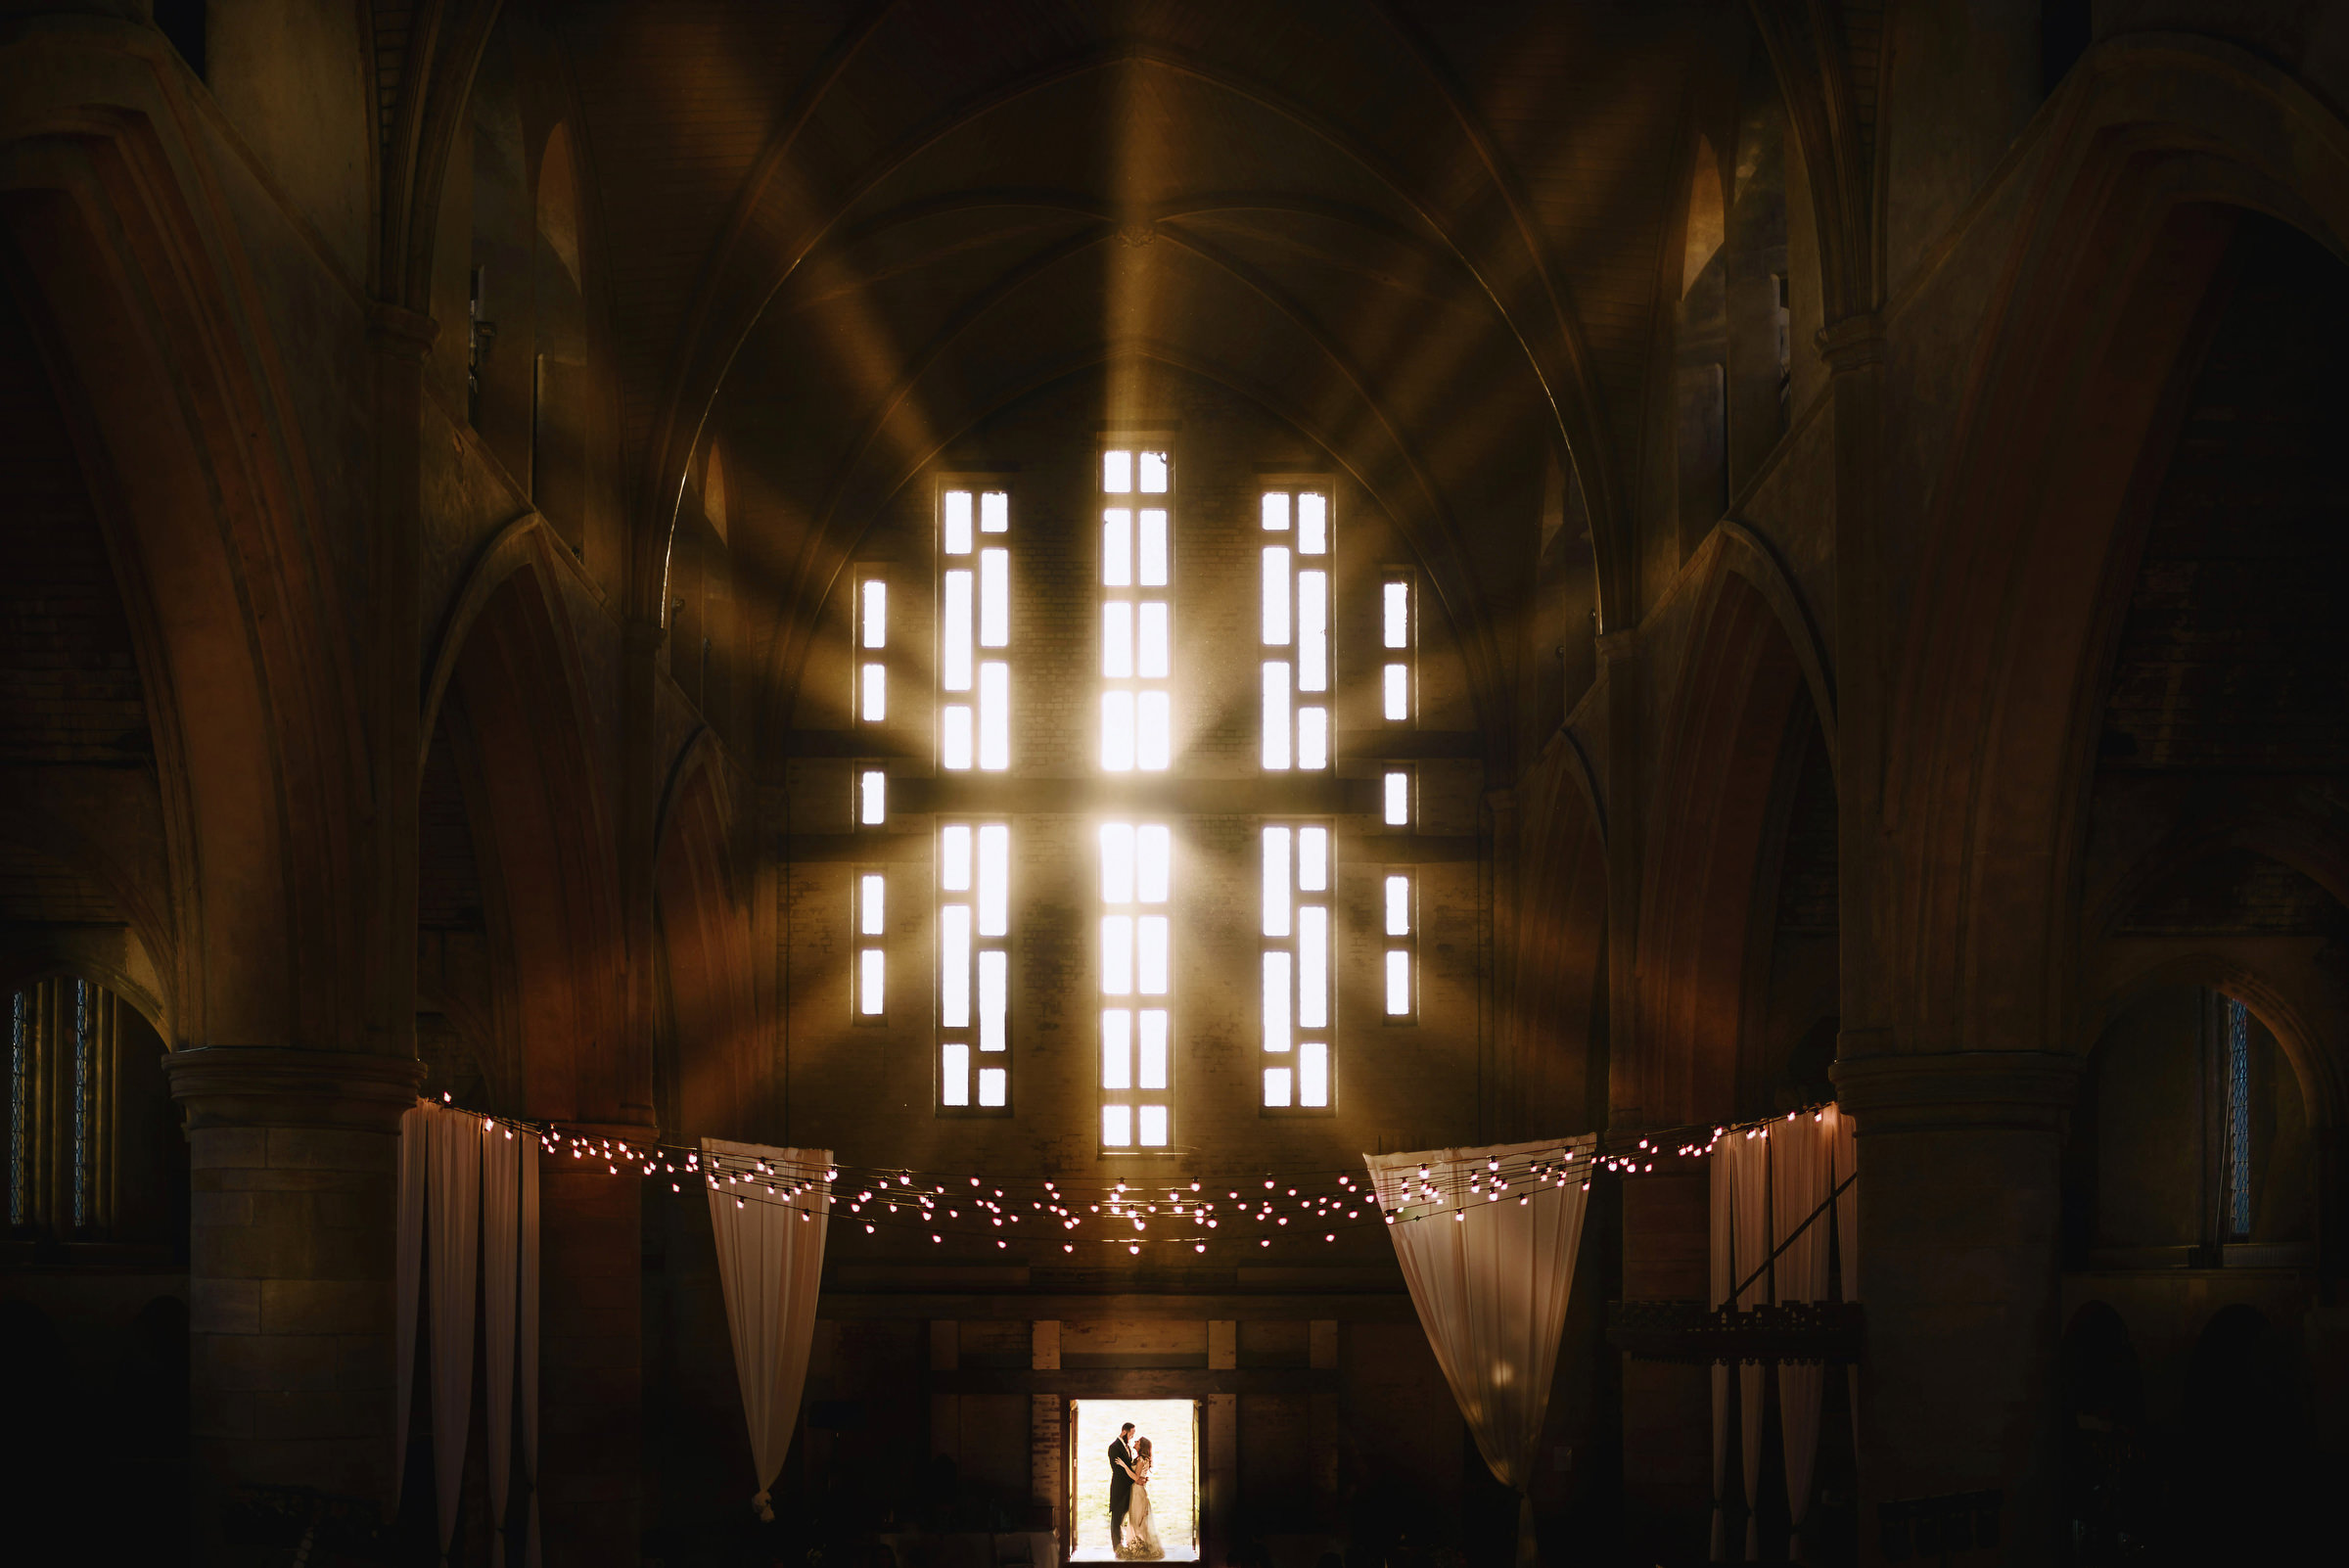 50 best wedding portraits of the decade - photo by Andy Gaines Photography